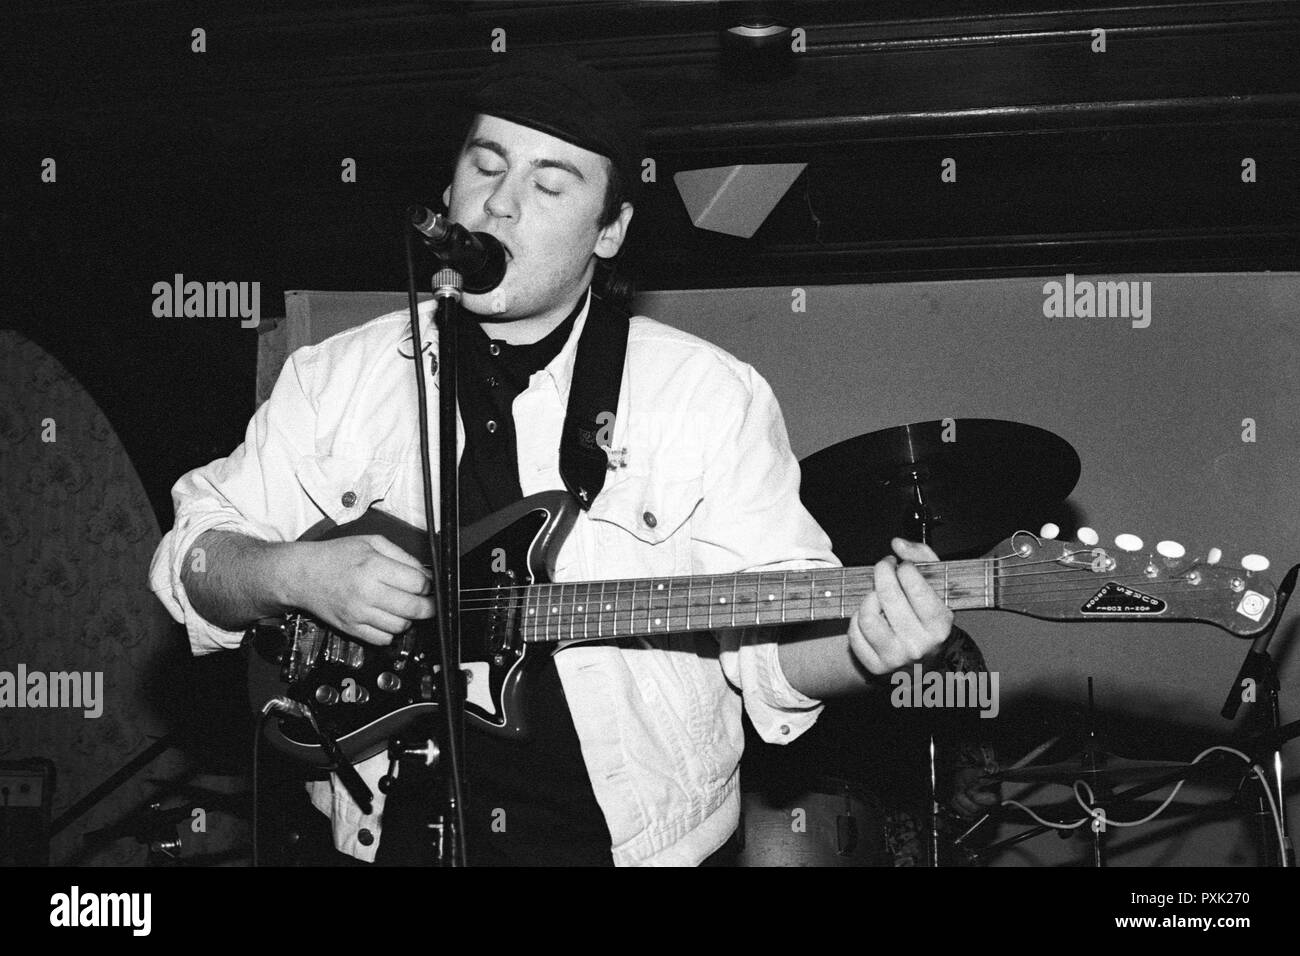 Dan Treacy, singer and guitarist of post-punk band Television Personalities performing at Esquires, Bedford, UK, in 1990. - Stock Image